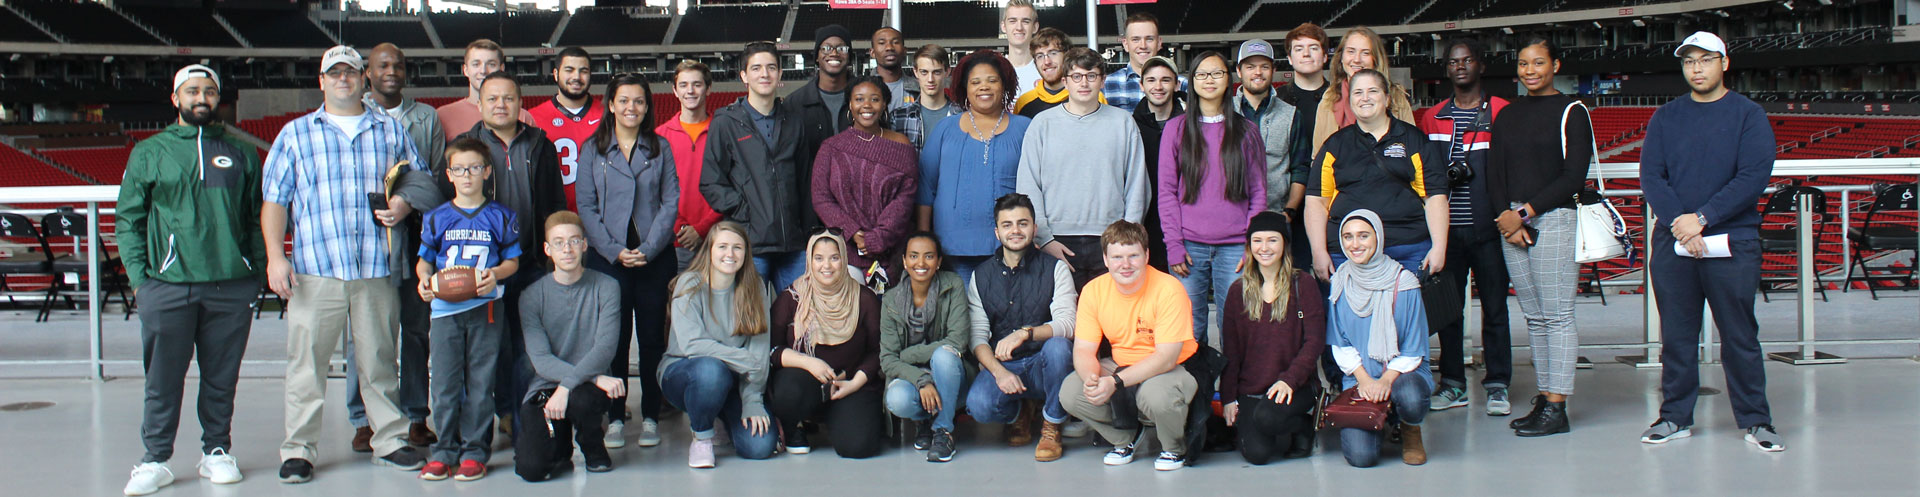 KSU AEE at Mercedes-Benz Stadium